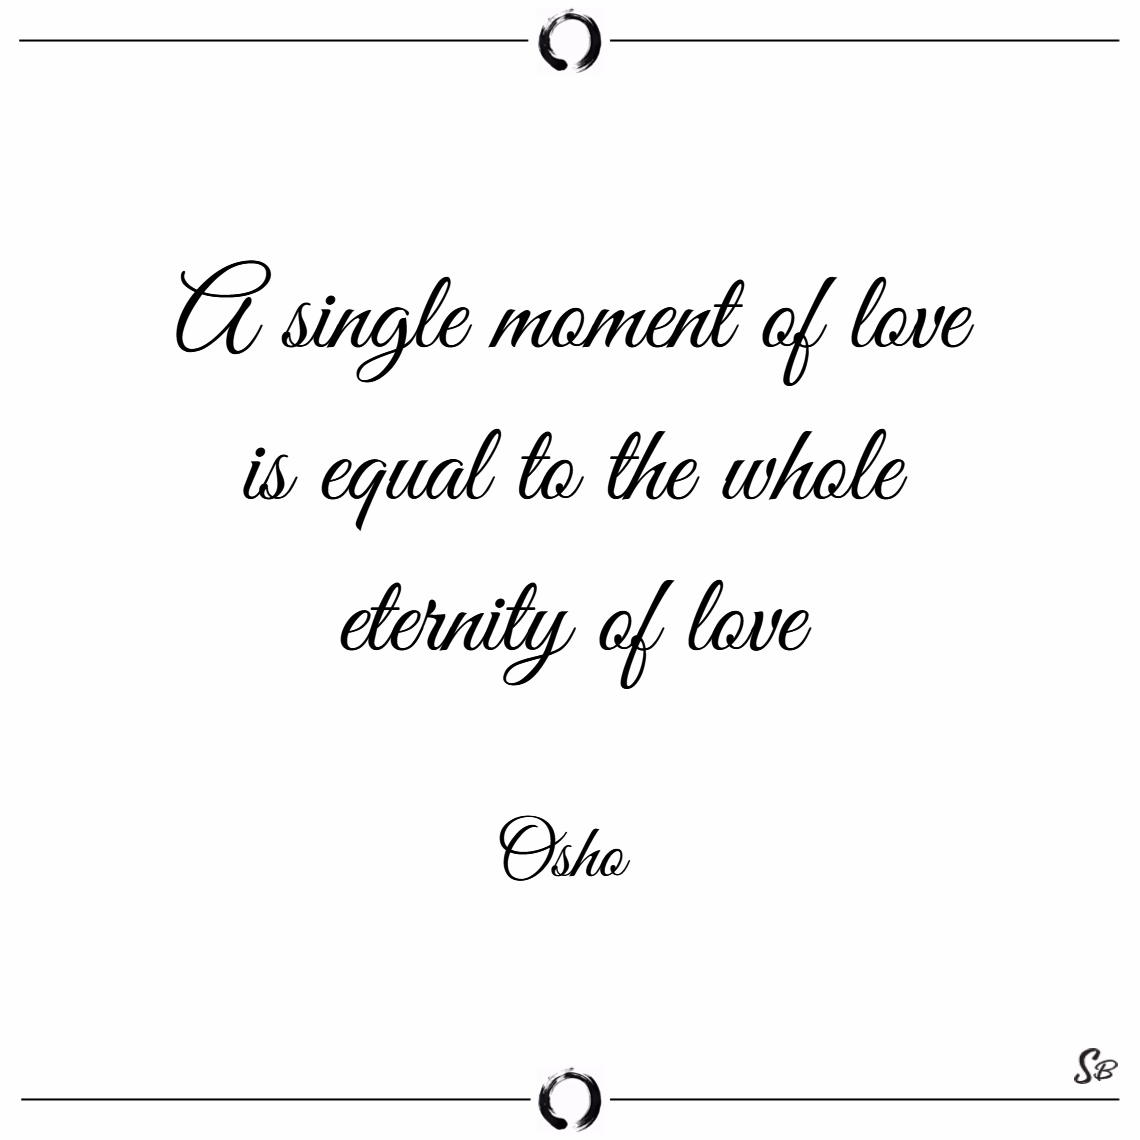 A simple moment of love is equal to the whole